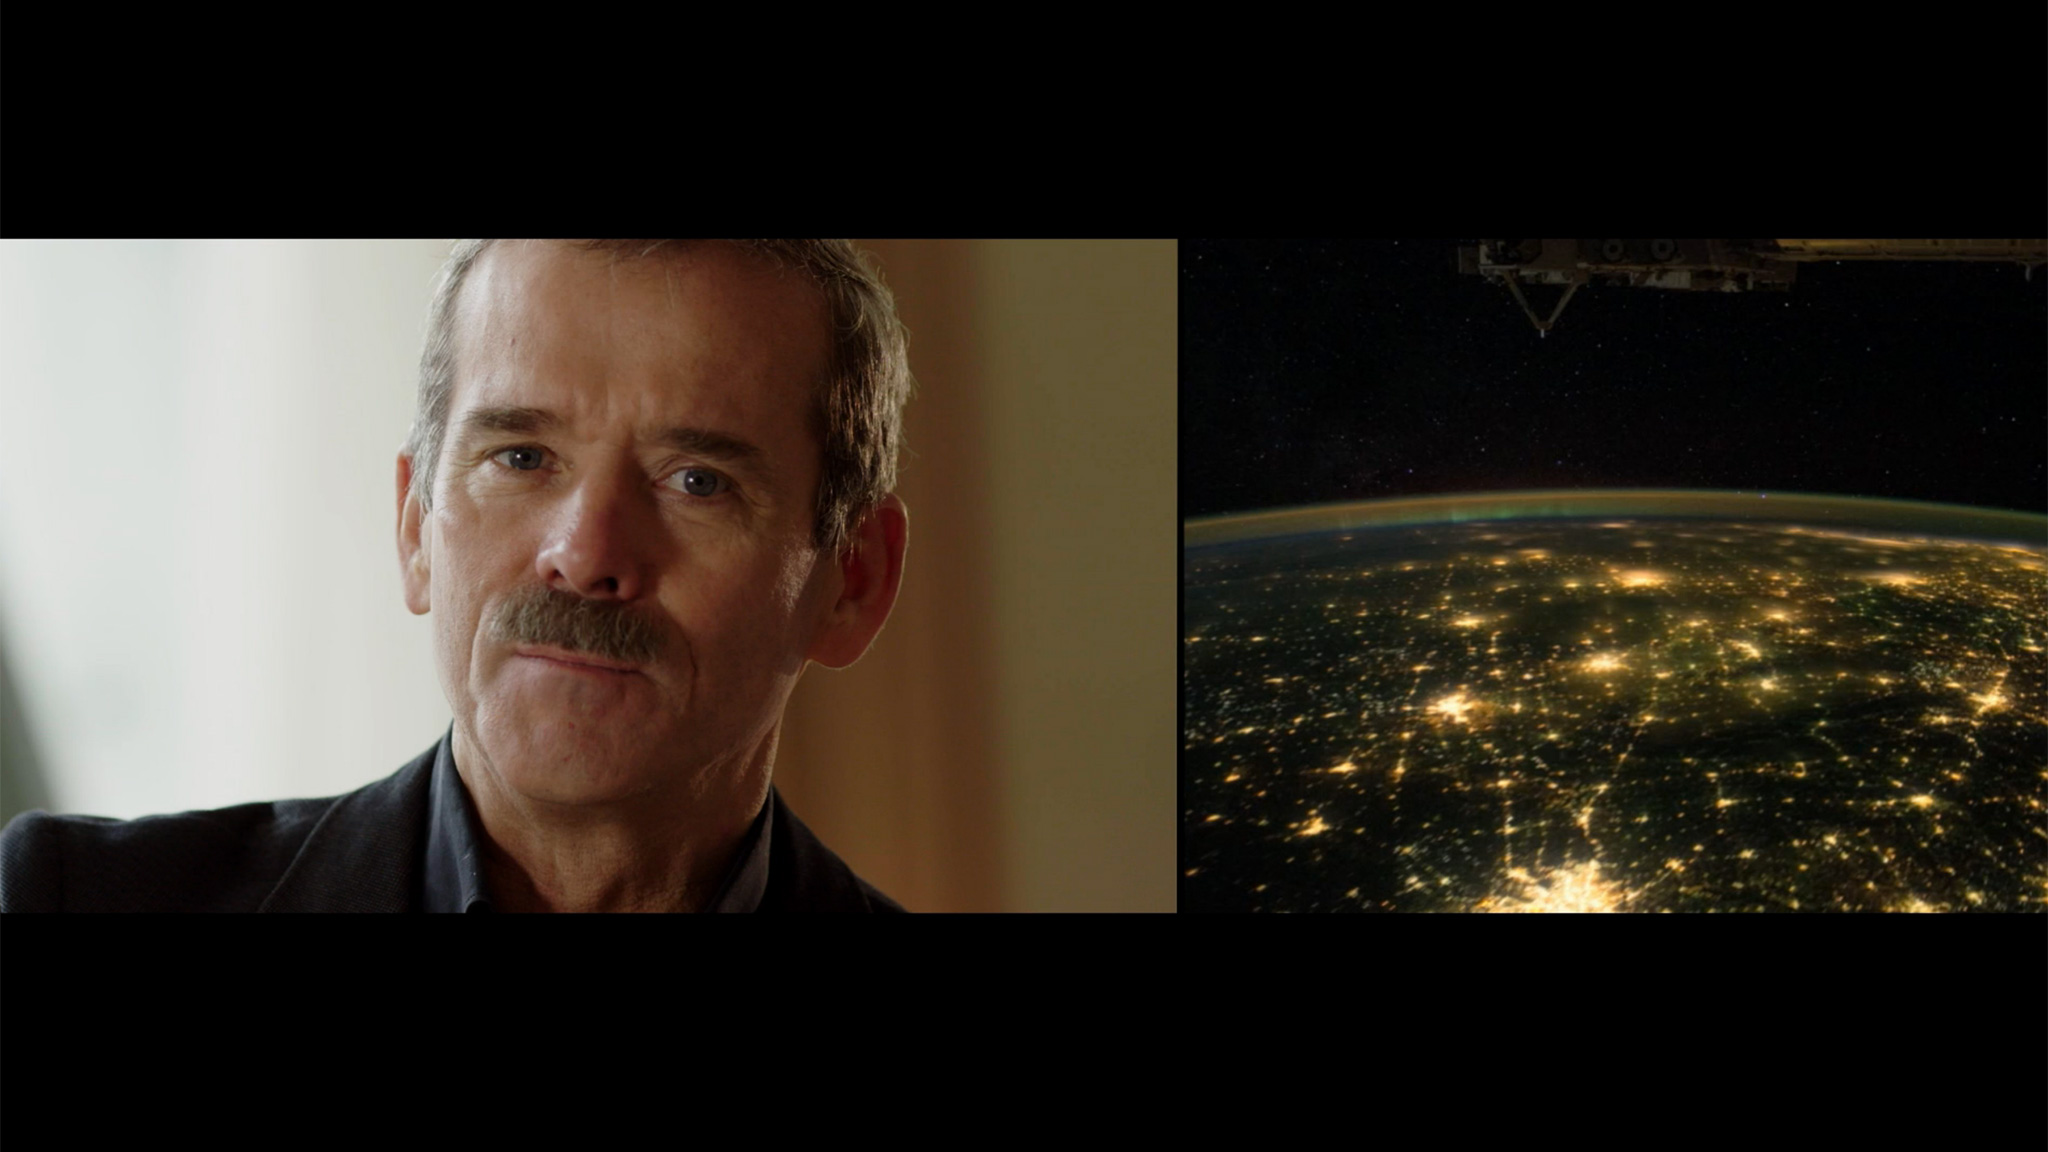 NFB Space School - Chris Hadfield's Journey (Ages 11-15)